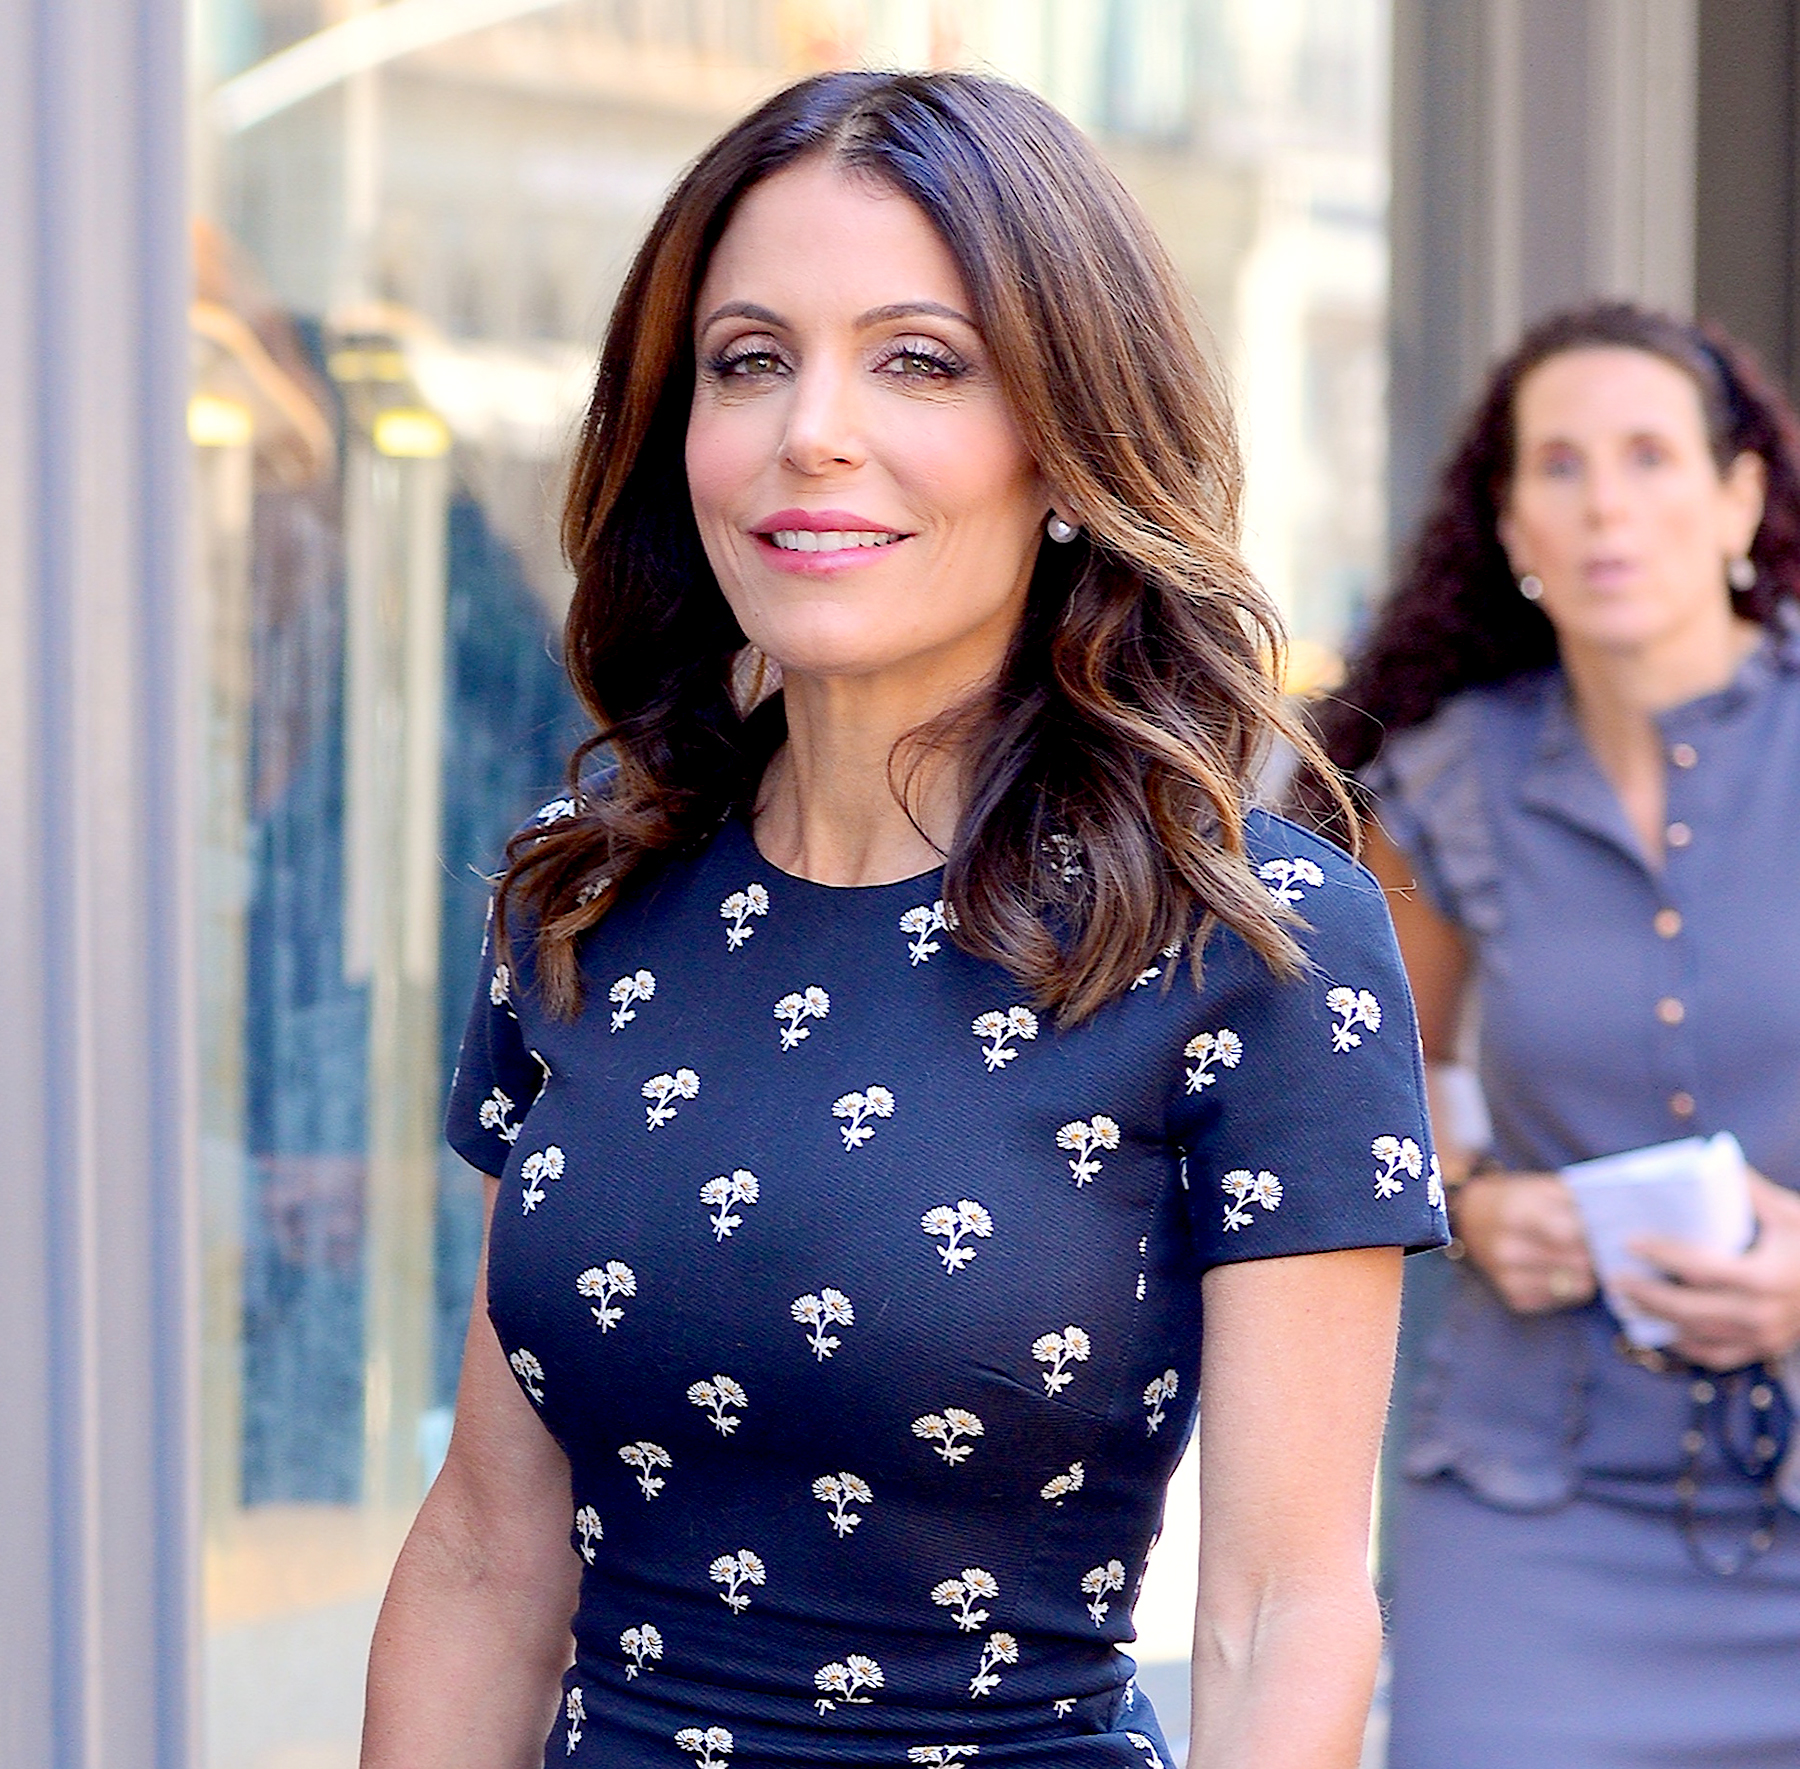 Bethenny-Frankel - Bethenny Frankel seen out and about in Manhattan on July 10, 2018 in New York City.